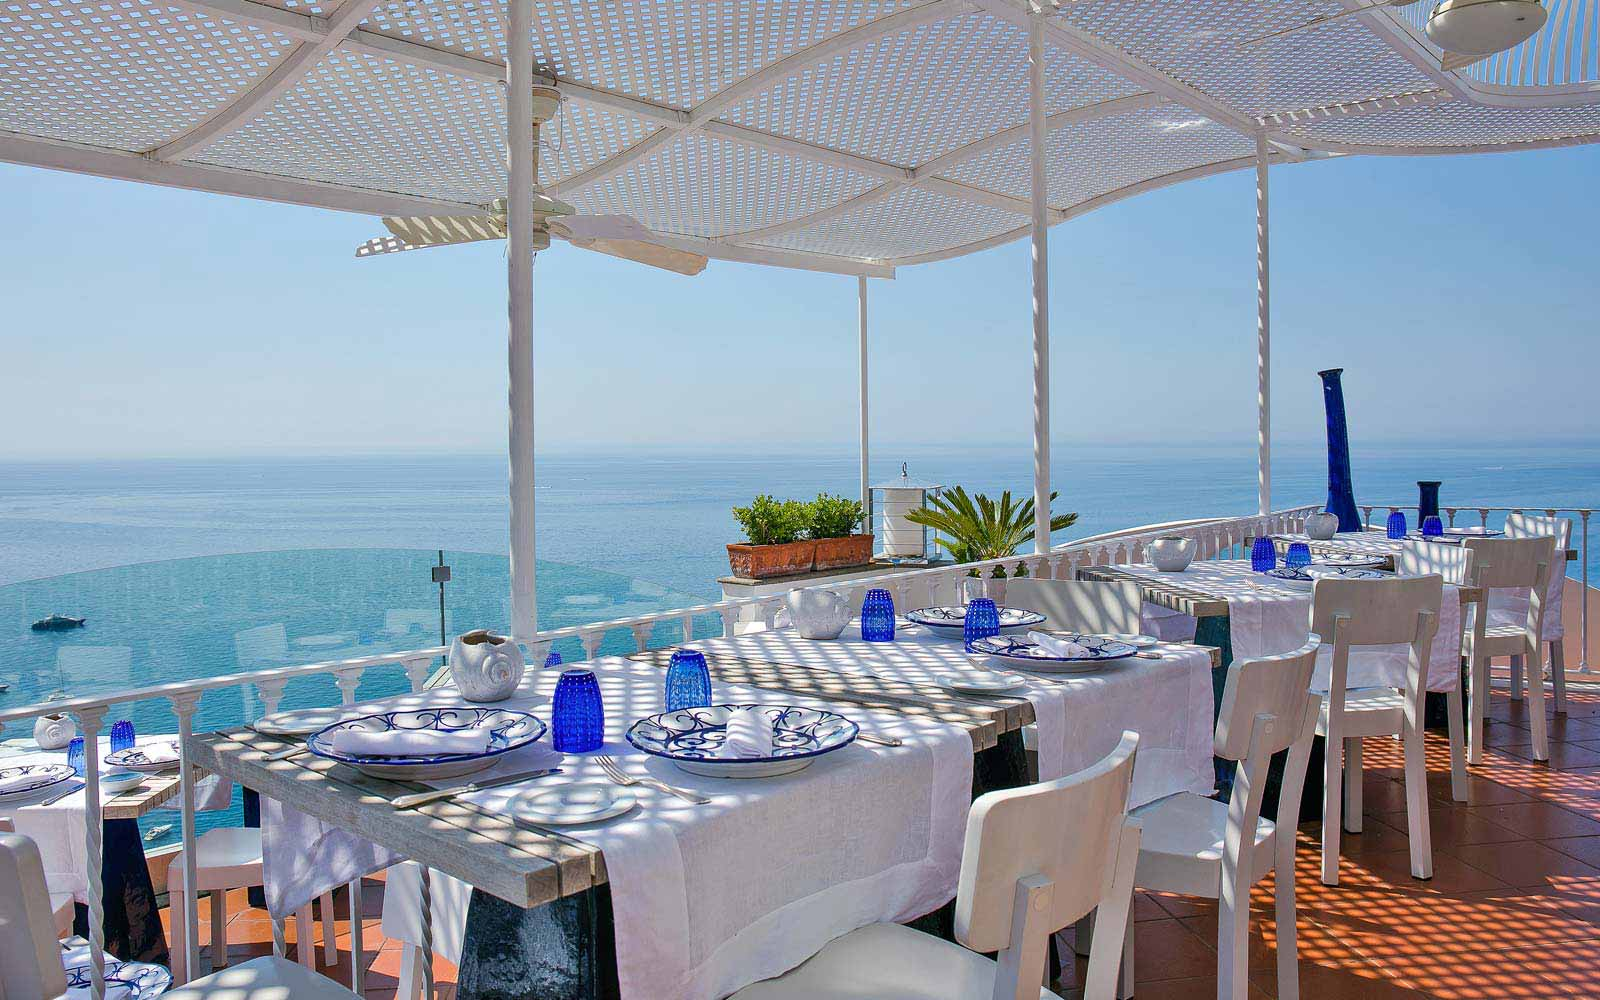 Panoramic restaurant at Hotel Villa Franca